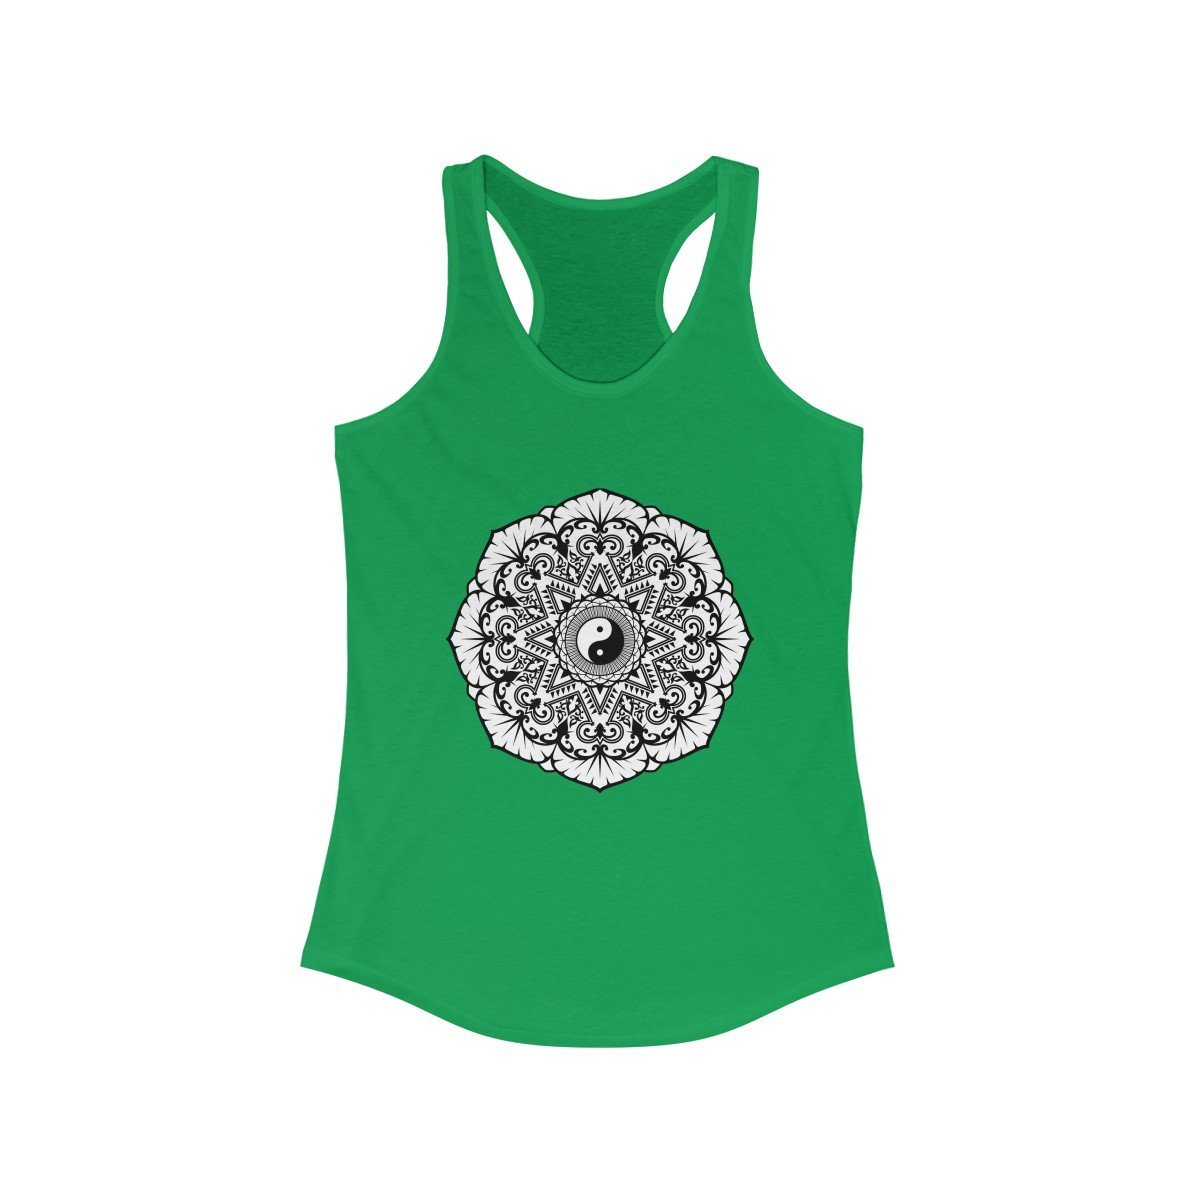 Mandala Black & White - Women's Ideal Racerback Tank Tank Top Printify Solid Kelly Green XS